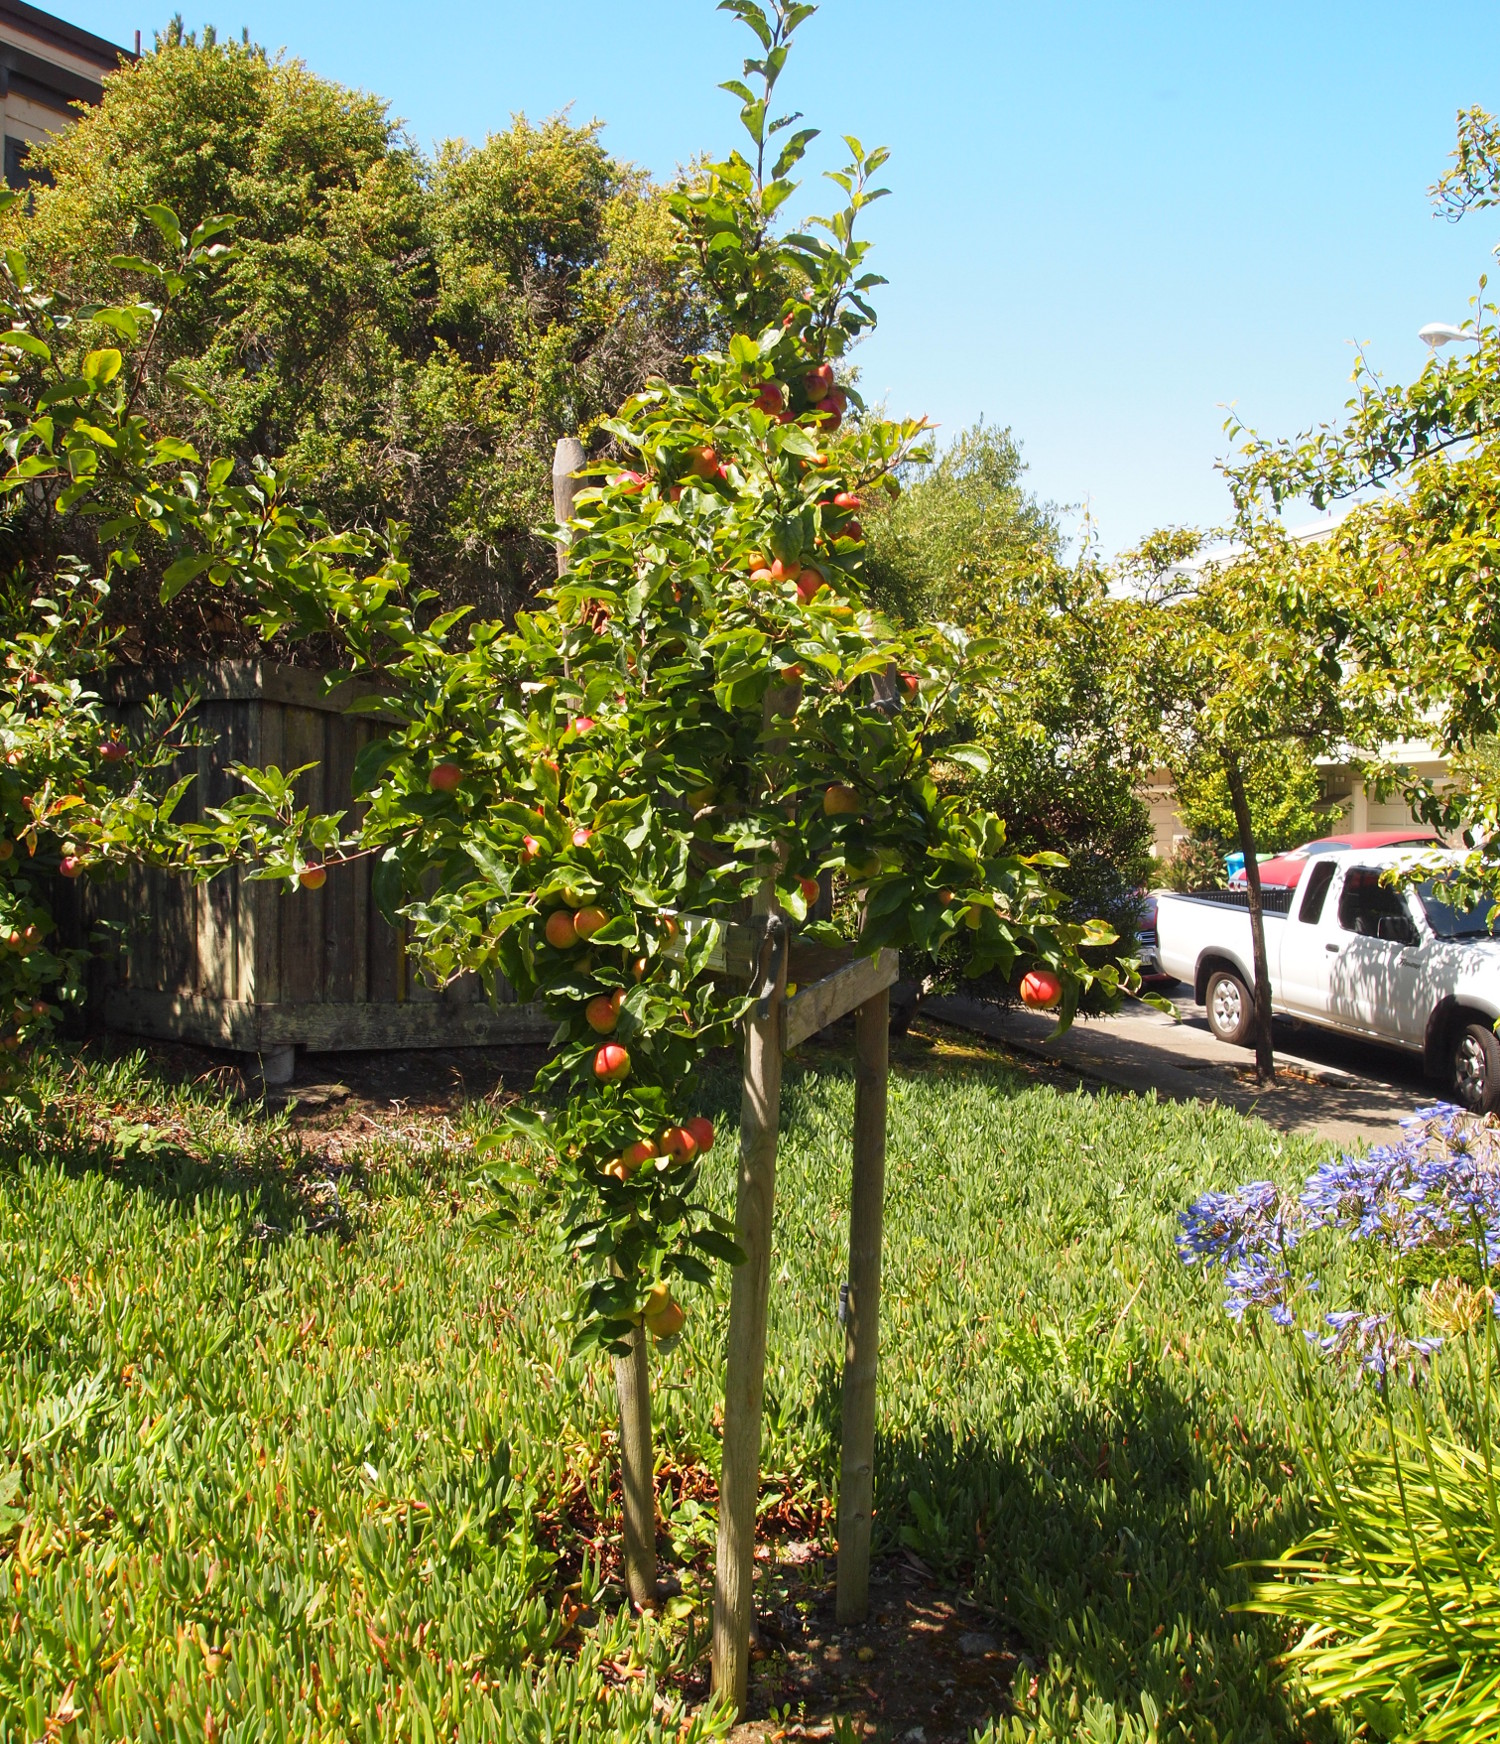 Malus x domestica elevation. Photo credit: Friends of the Urban Forest